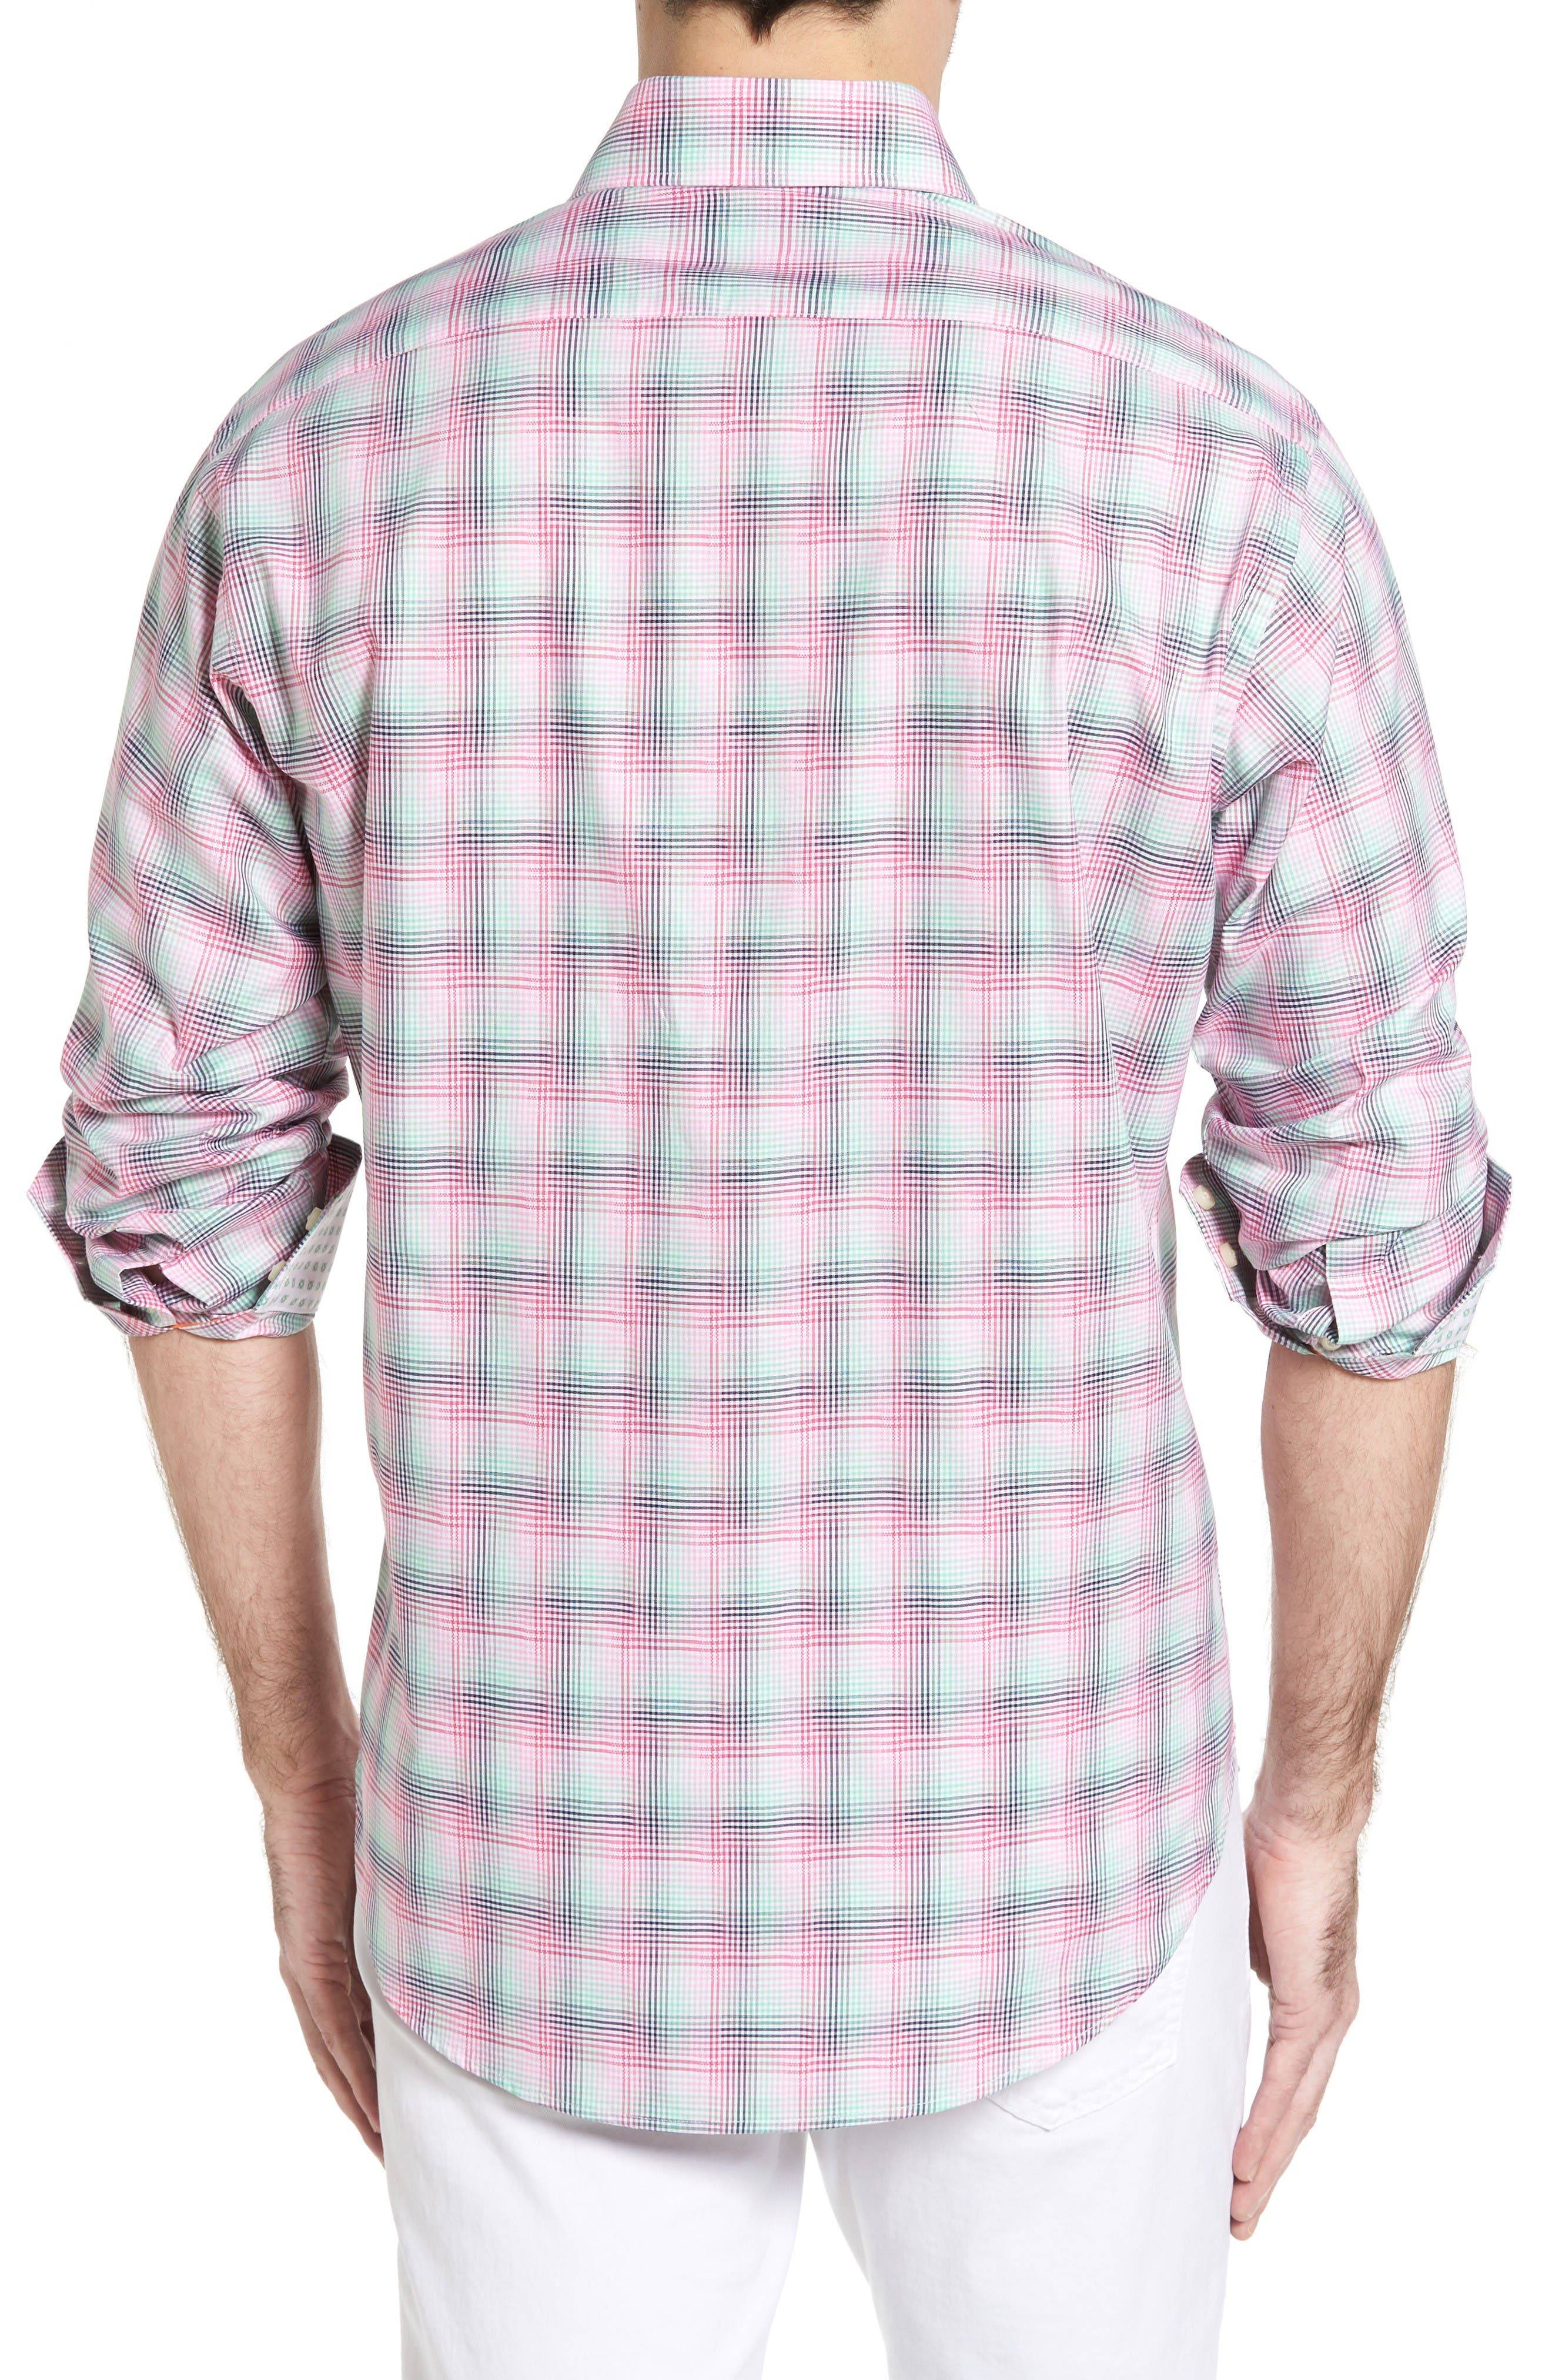 Alternate Image 2  - Thomas Dean Classic Fit Funky Plaid Sport Shirt (Regular)